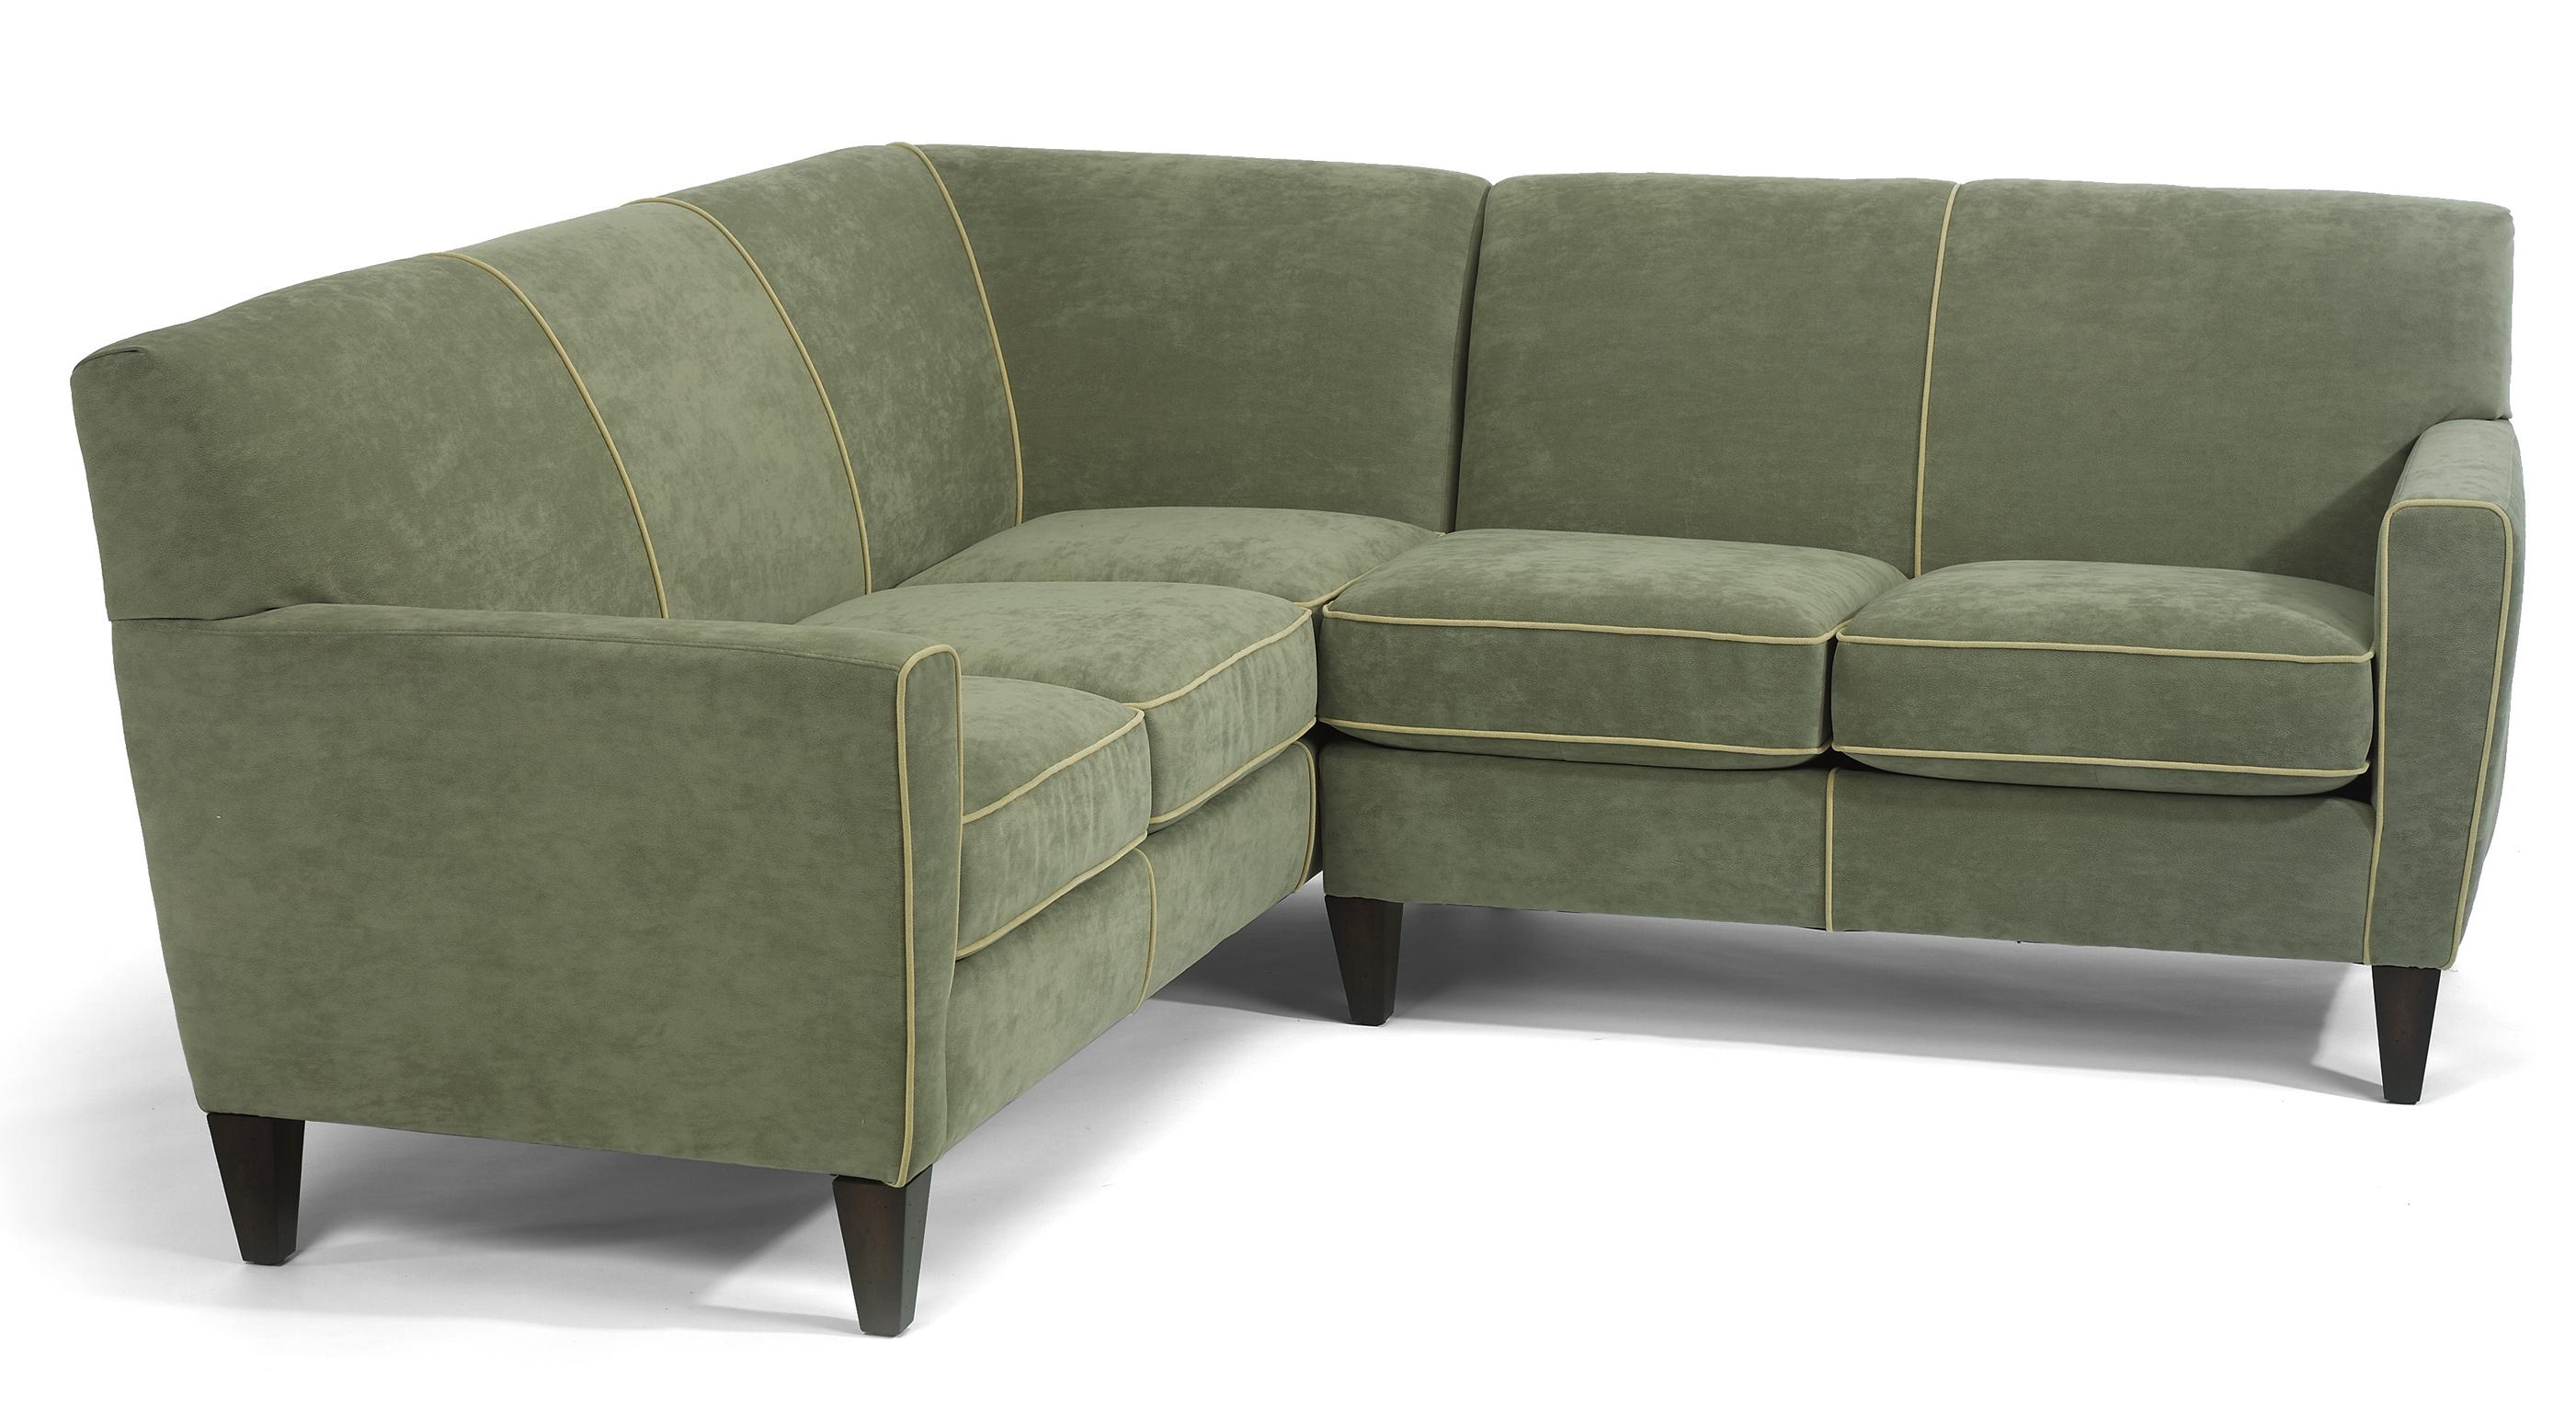 Flexsteel Digby Contemporary L Shape Sectional Sofa AHFA Sofa